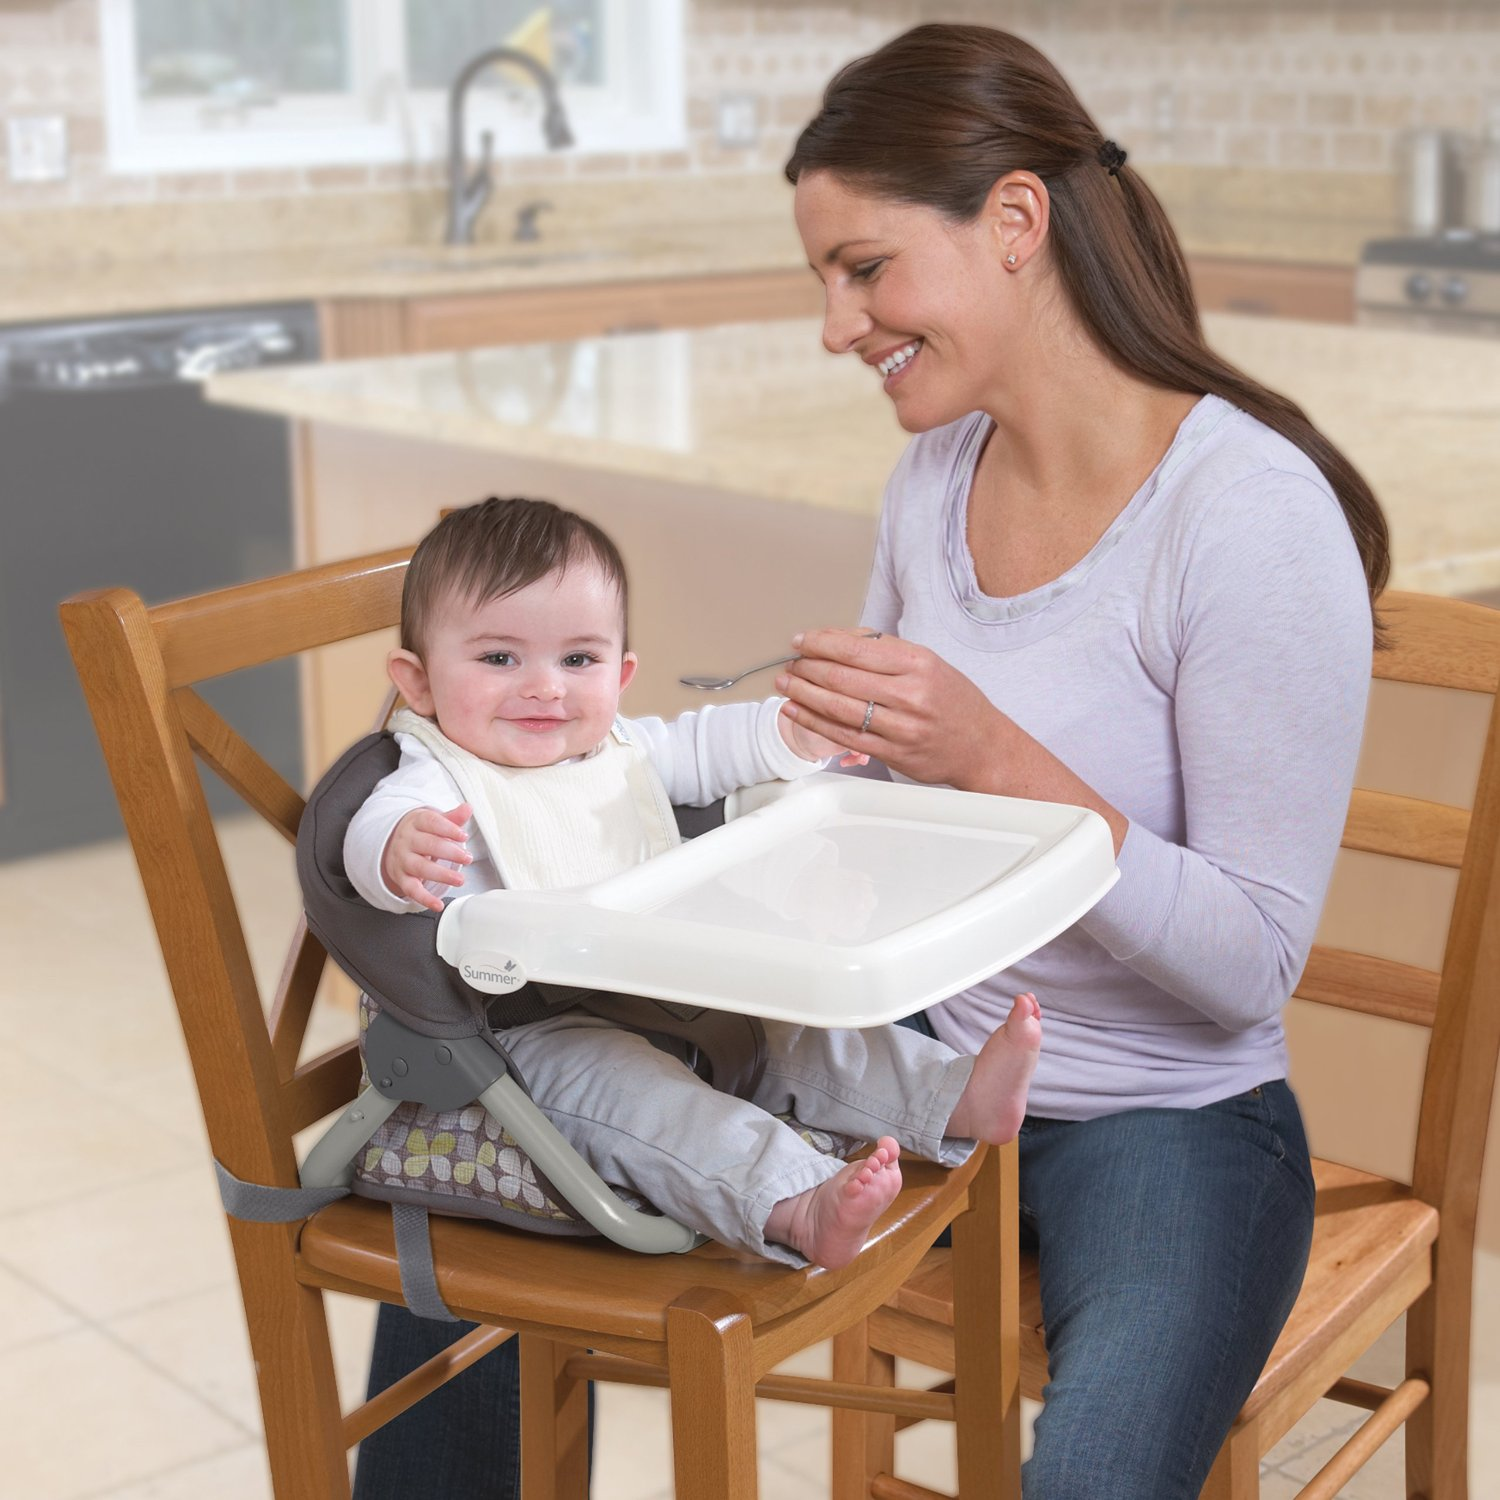 Baby Hook Chair Total Fab Baby High Chair That Attaches To Table A Neat Idea